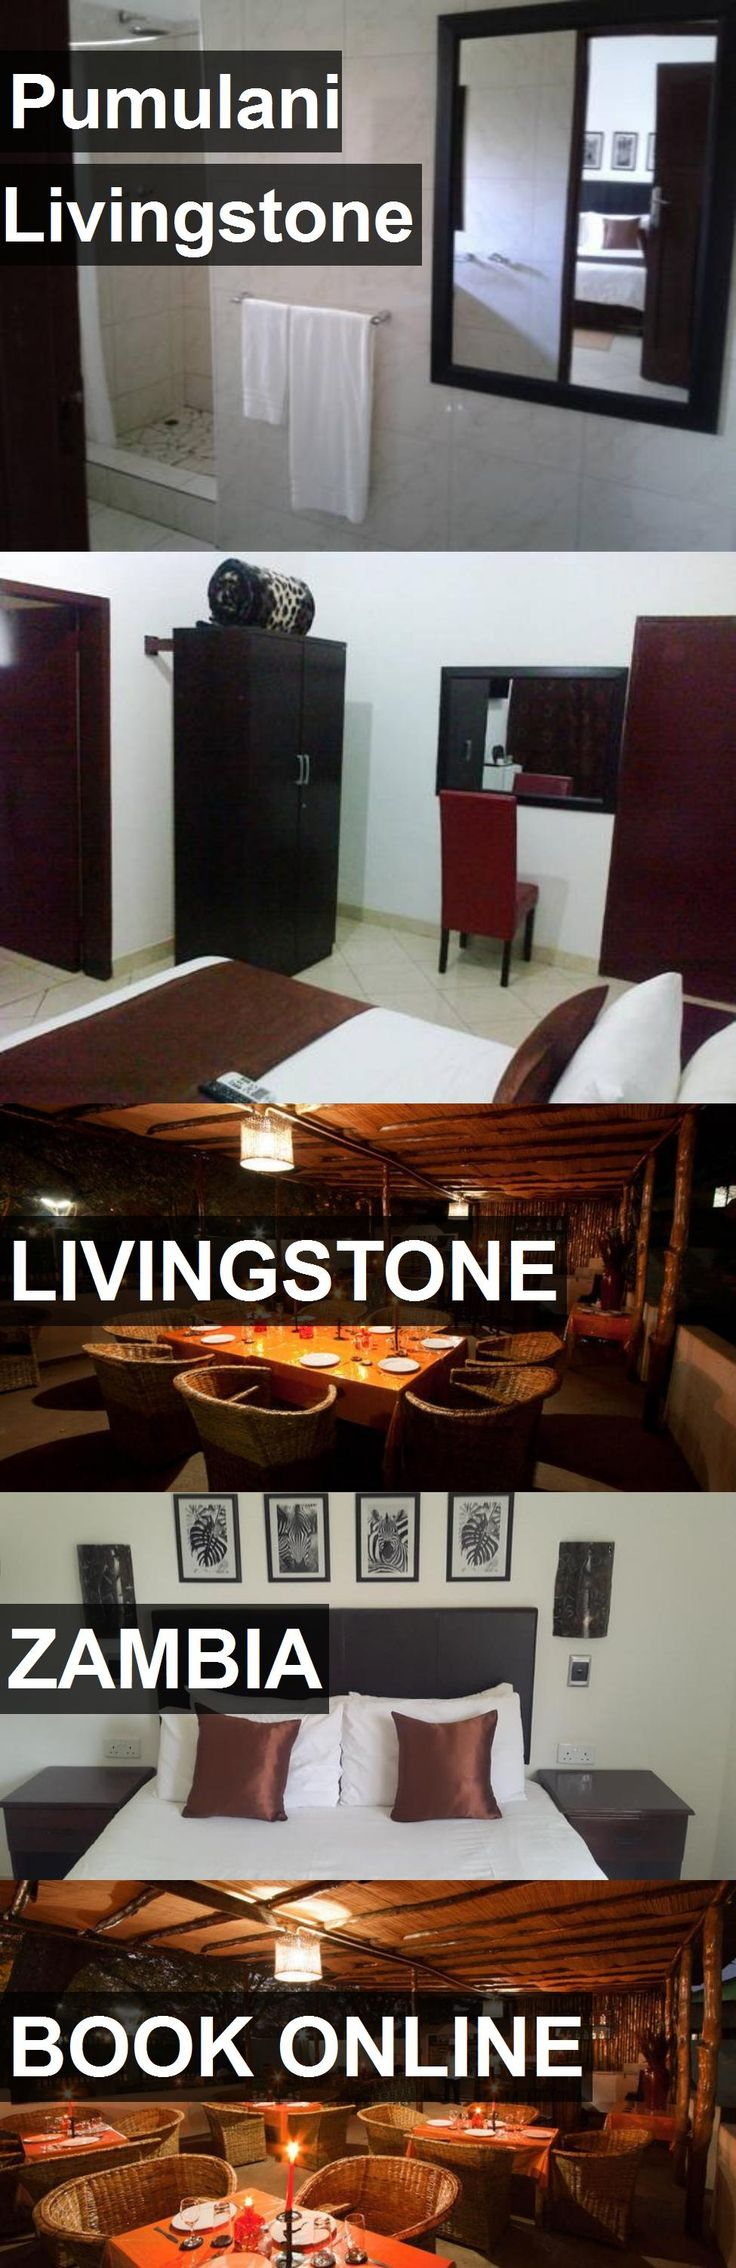 Hotel Pumulani Livingstone in Livingstone, Zambia. For more information, photos, reviews and best prices please follow the link. #Zambia #Livingstone #travel #vacation #hotel